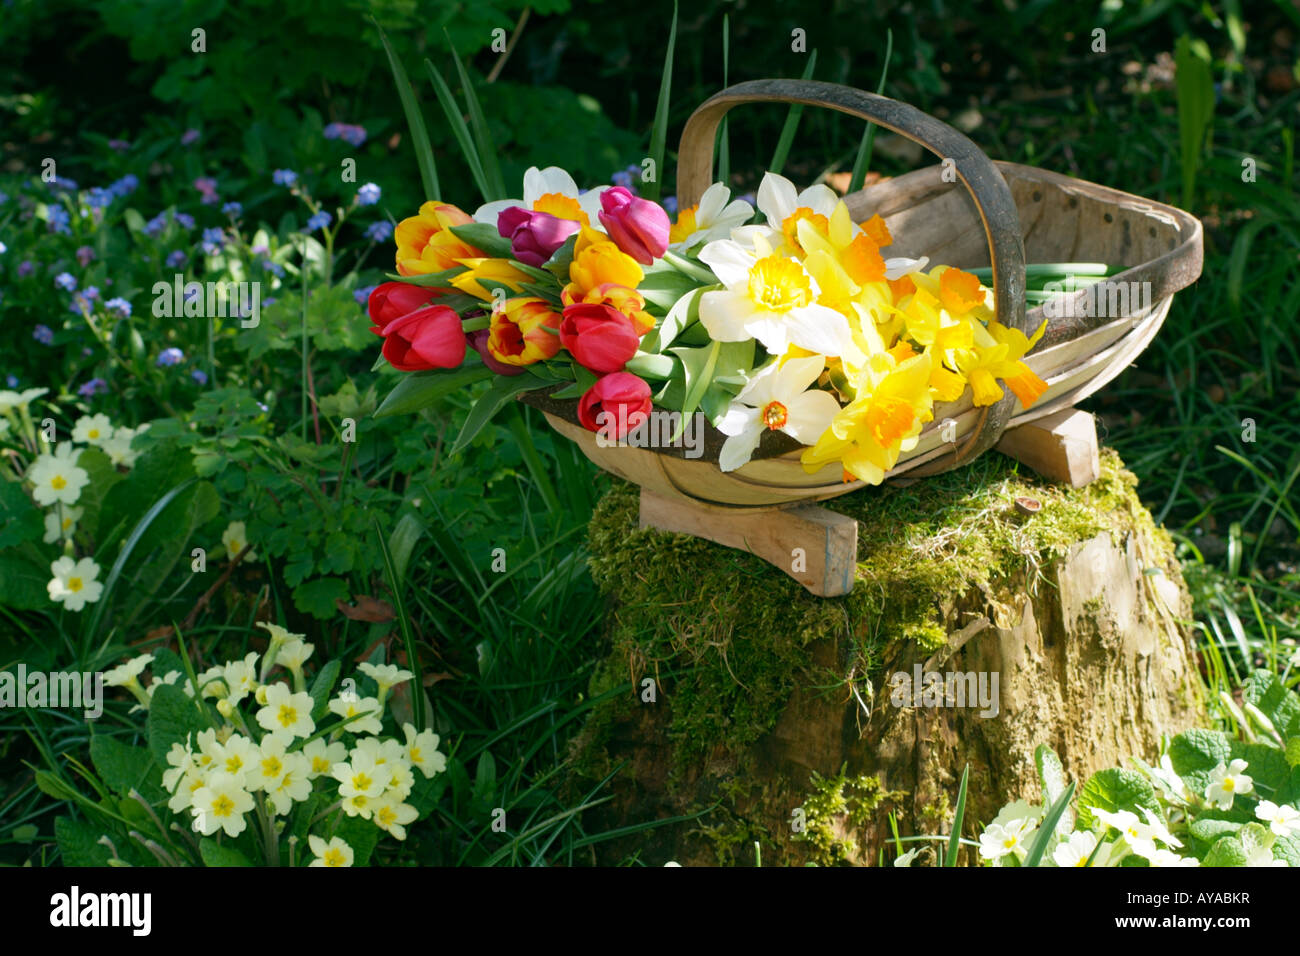 English Country Garden Scene Stock Photos & English Country Garden ...